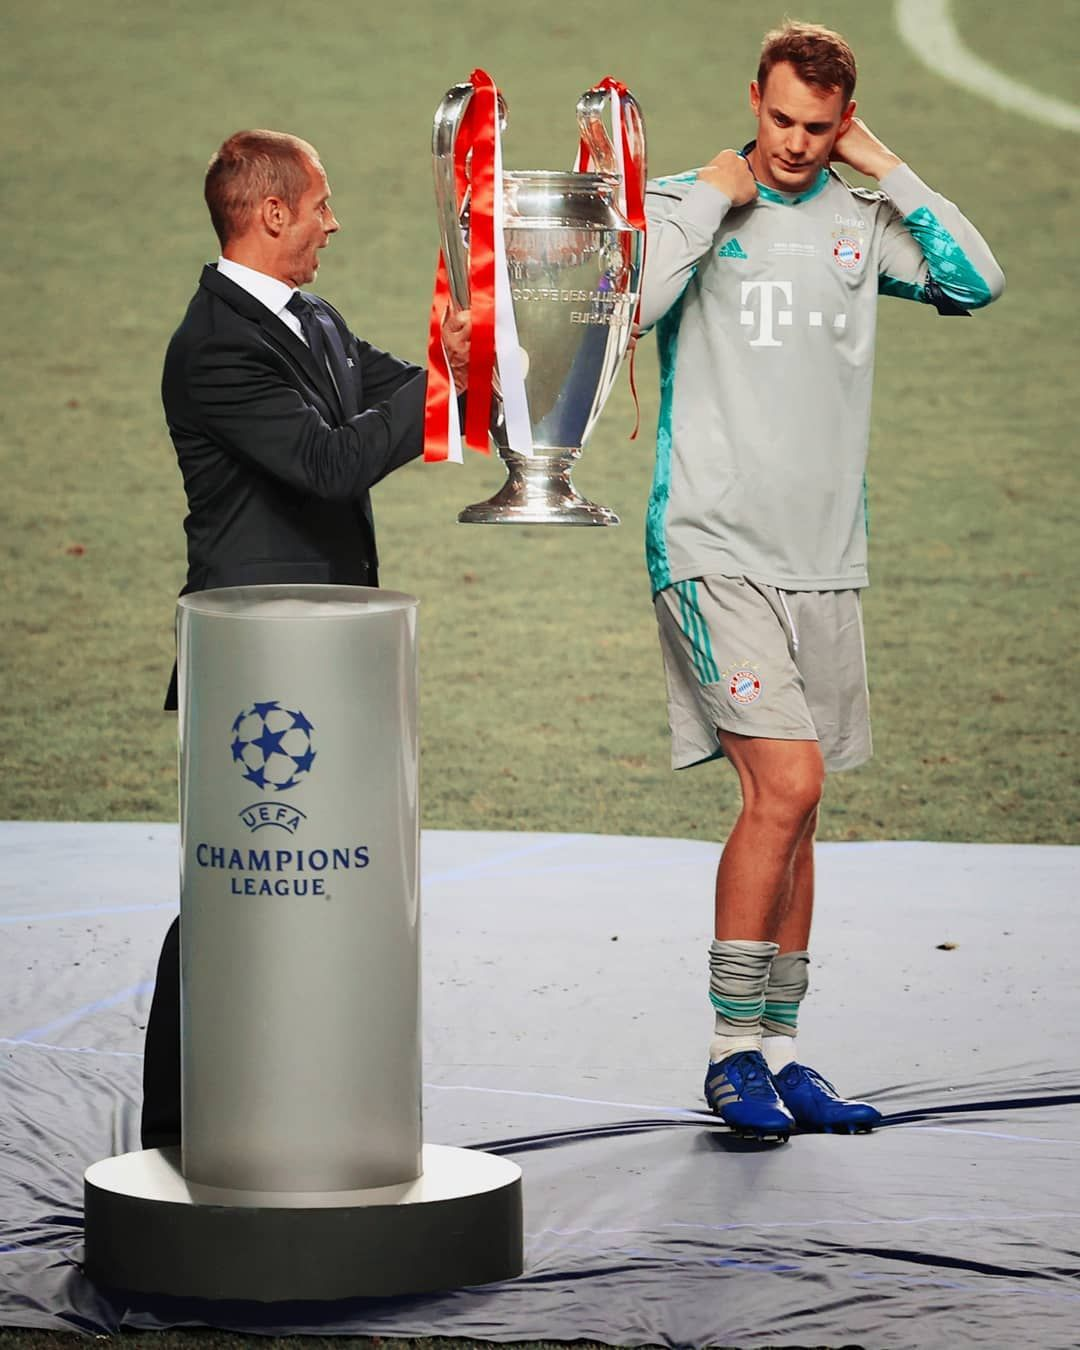 Manuel Neuer Fan Account On Instagram Manuel Neuer Is Presented With The Trophy By Uefa Champ Champions League Final Champions League Uefa Champions League